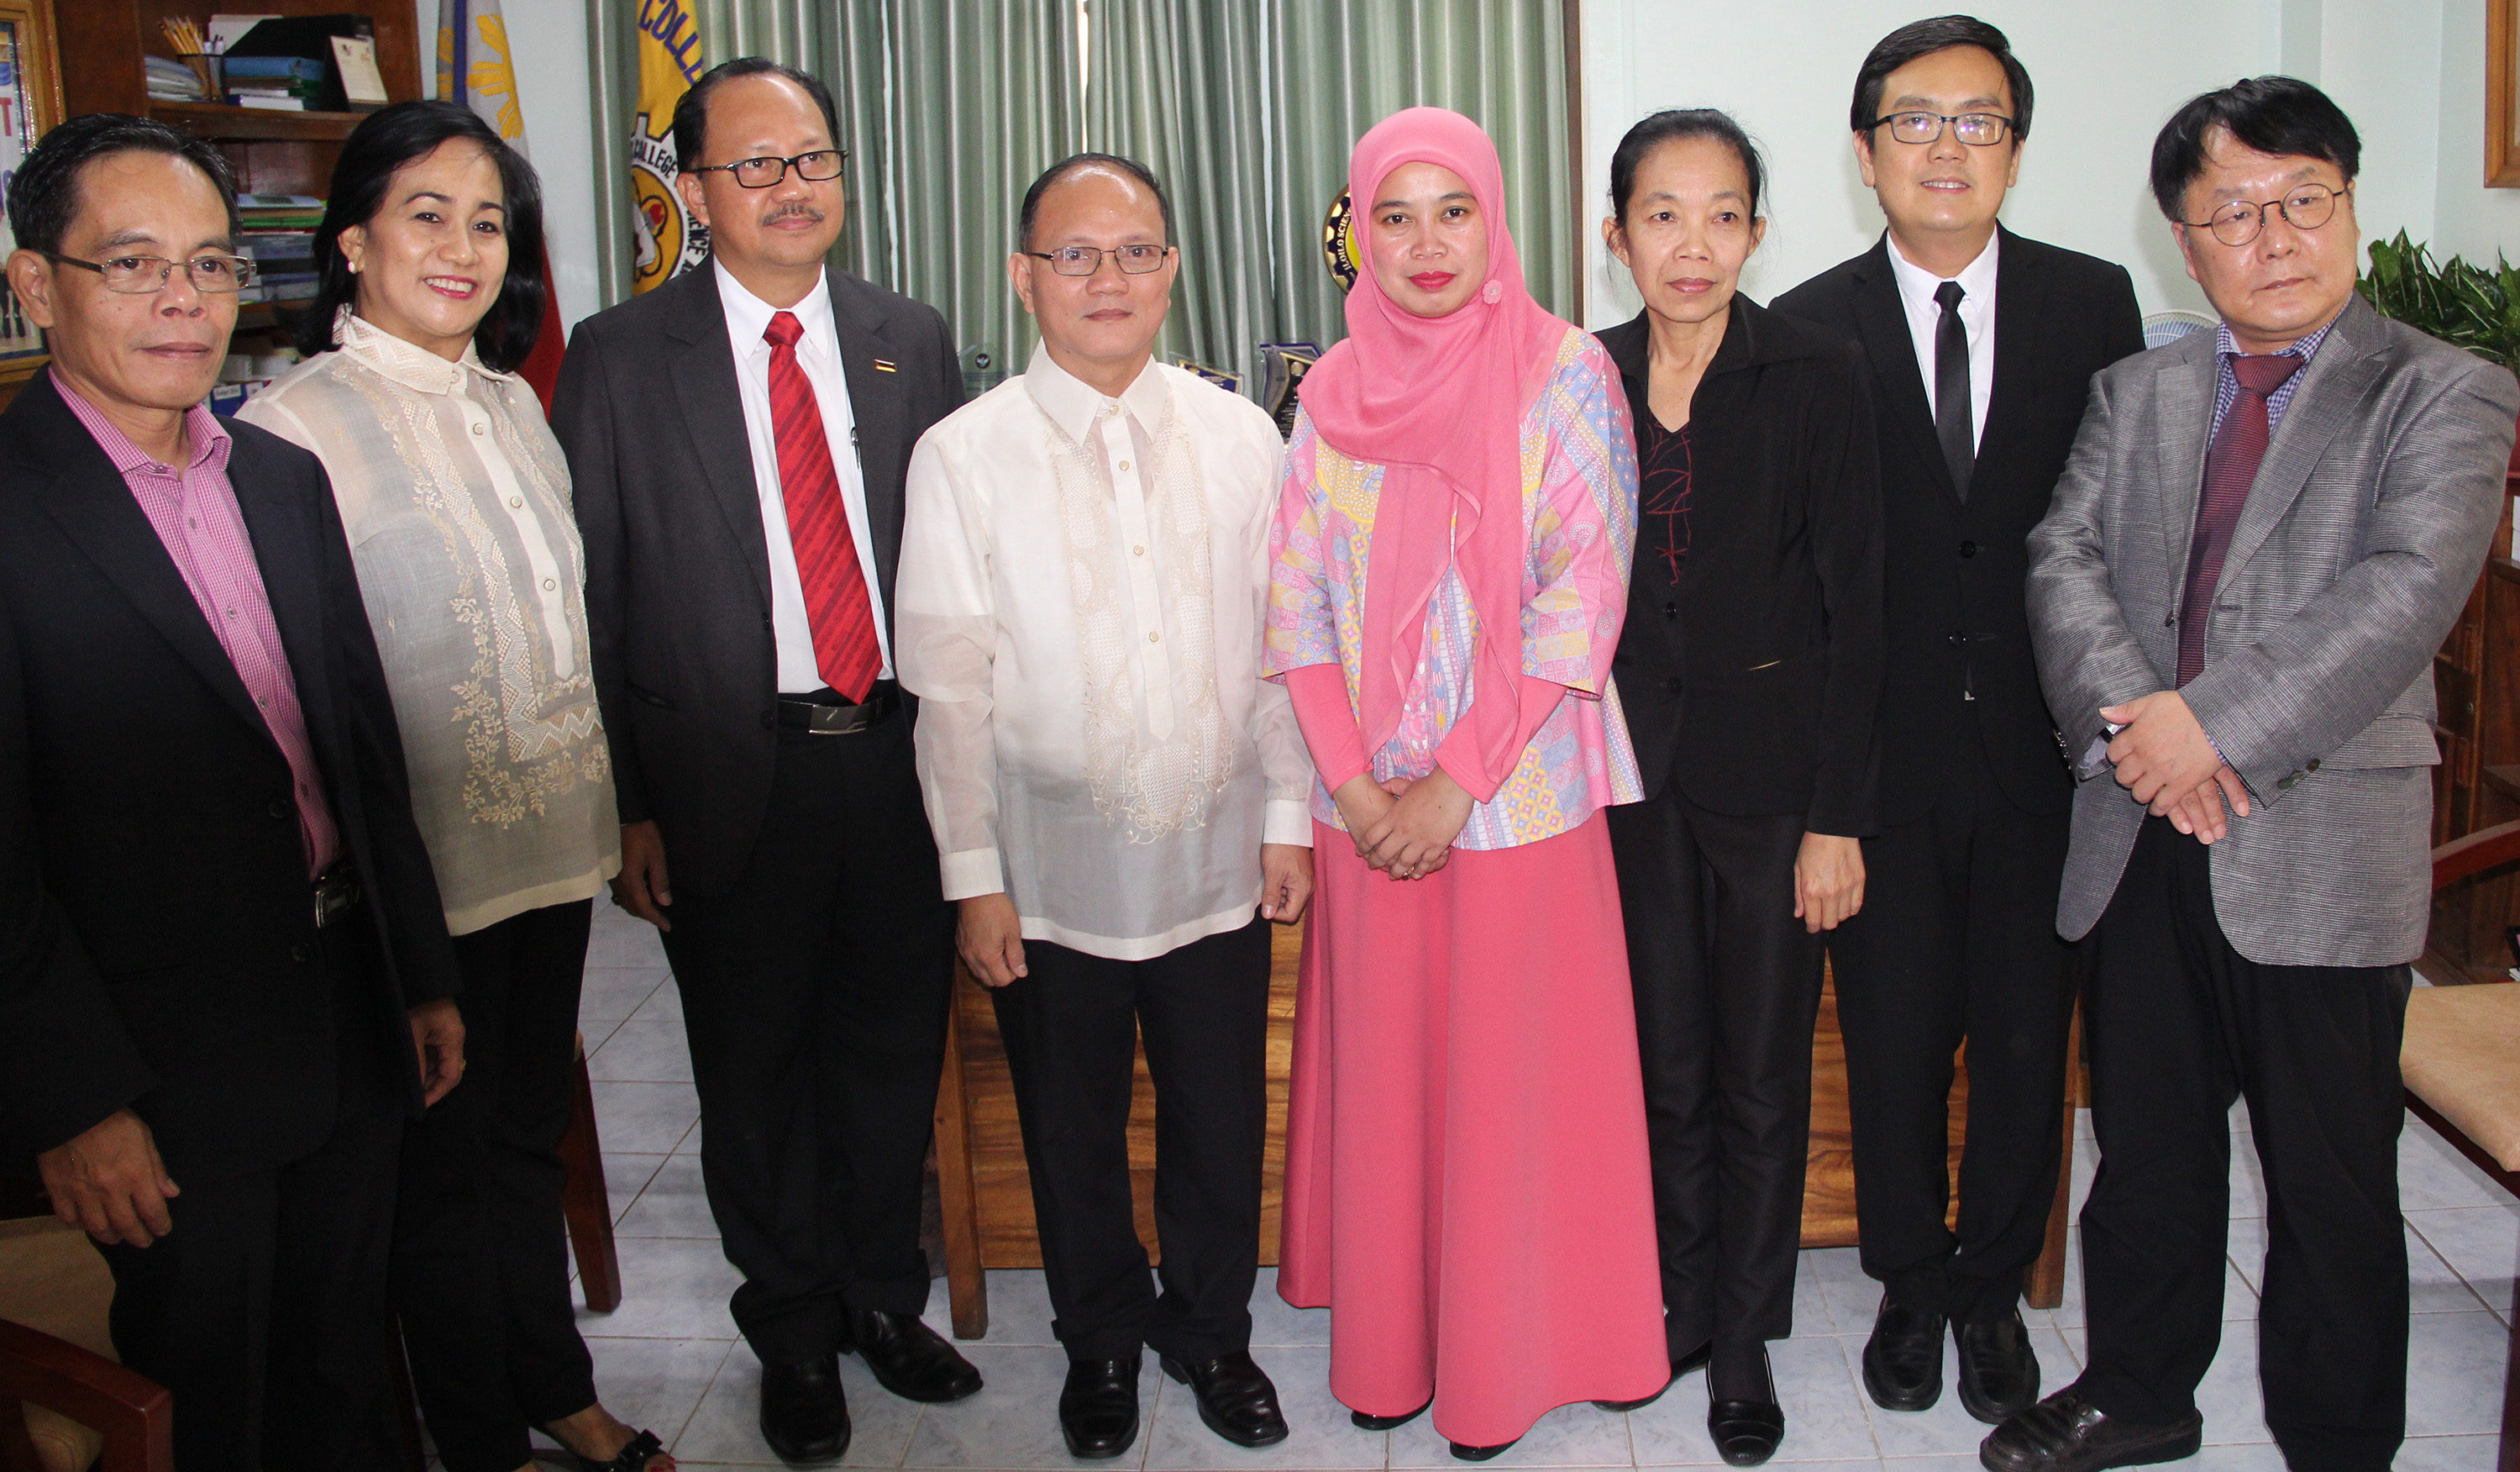 The delegates from the six-member nations of Asia-Pacific Network Sector of Technical Vocational Education and Training (TVET) during a courtesy visit at the Office of the University President. From left, Dr. Manuel de la rosa of UNEVOC Philippines manila Center. ISAT U VPAF Dr. Nehema K. Misola, Asso. Prof. Razzal Hassan of Malaysia, ISAT U Pres. Dr. Raul F. Muyong, Anita Widiawati of UNEVOC Indonesia, Deputy Director Nivone Moungkhounsavath of Laos, Mr. Panyachart Wongpanya , OVEC Thailand and Dr. Hwang Gyu-Hee of the Korean Research Institute for Vocational Education and Training (KTIVET) Center for Global Cooperation.